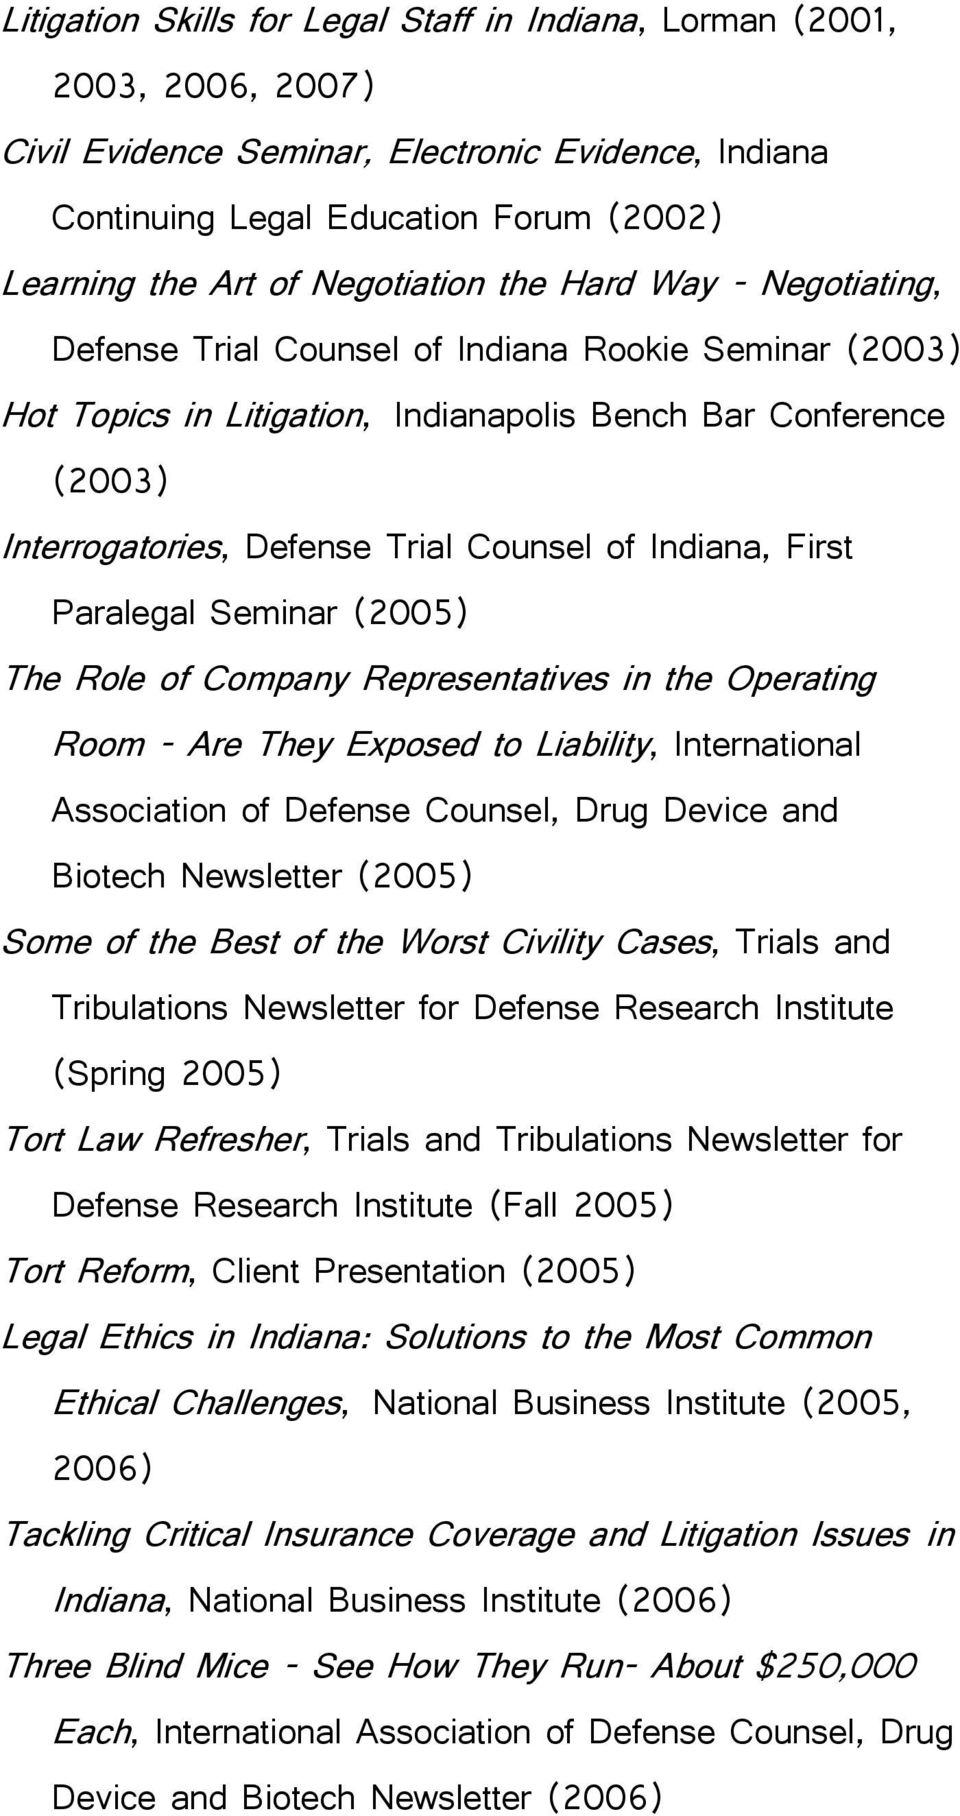 Counsel of Indiana, First Paralegal Seminar (2005) The Role of Company Representatives in the Operating Room - Are They Exposed to Liability, International Association of Defense Counsel, Drug Device